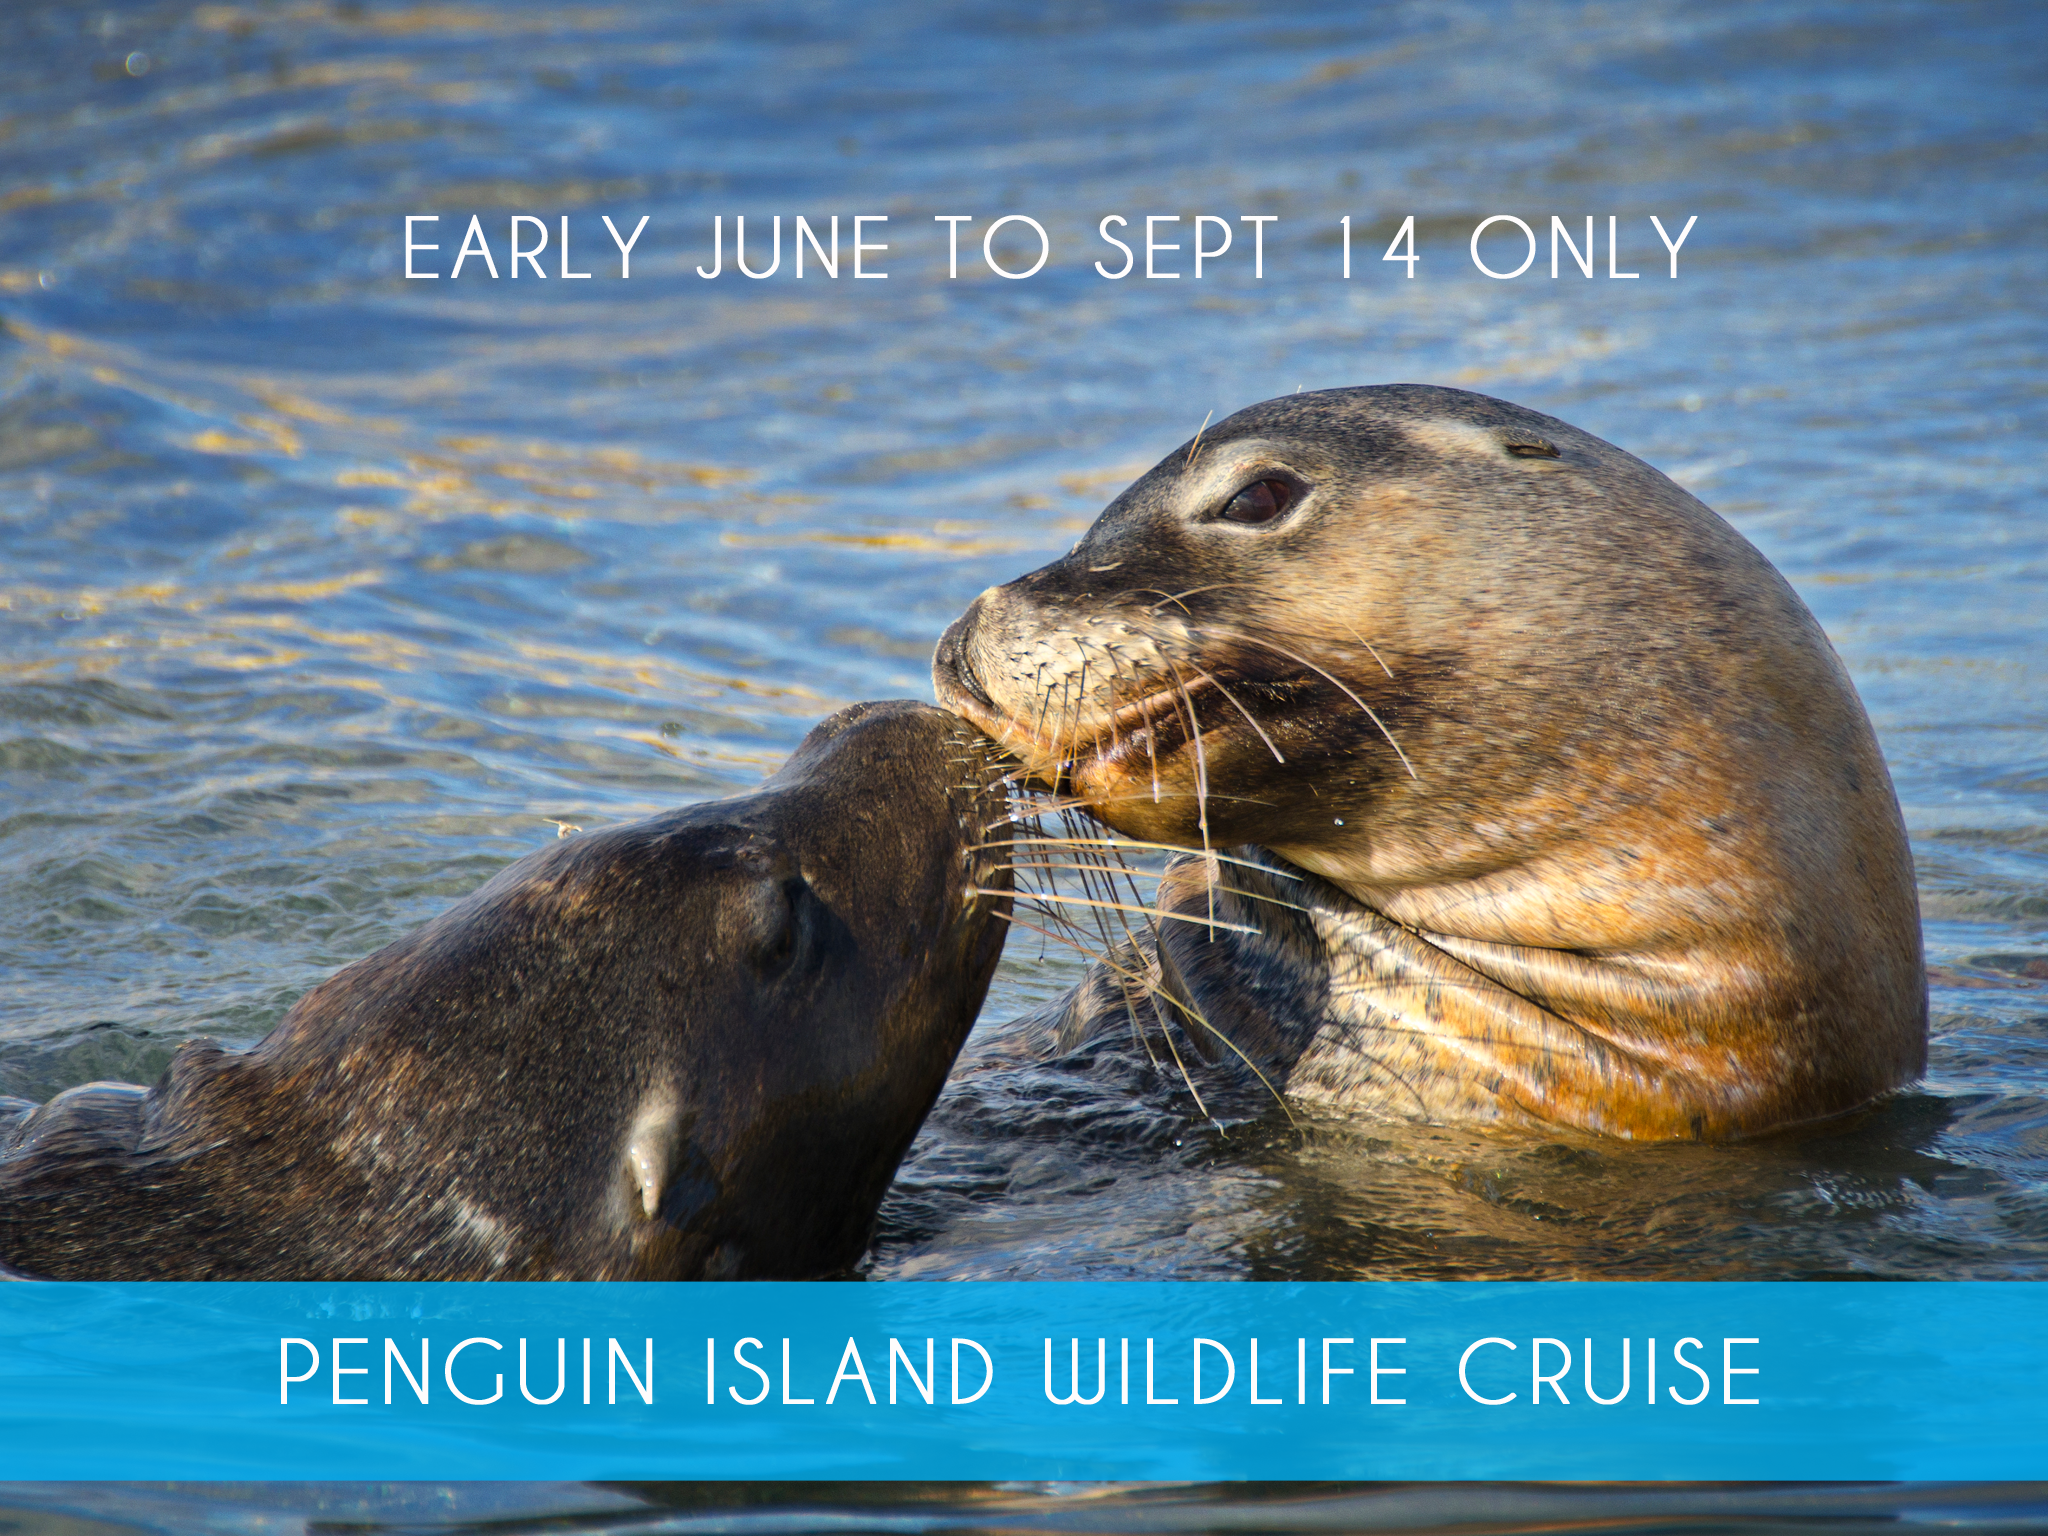 PENGUIN ISLAND WILDLIFE CRUISE  (June 6 to Sept 14 only) Join us on a 60 minute glass bottom boat cruise in search of dolphins, sea lions and nesting sea birds. Includes a 30 minute guided walk on Penguin Island to take in spectacular views of the marine park.  Adults $39   MORE INFO